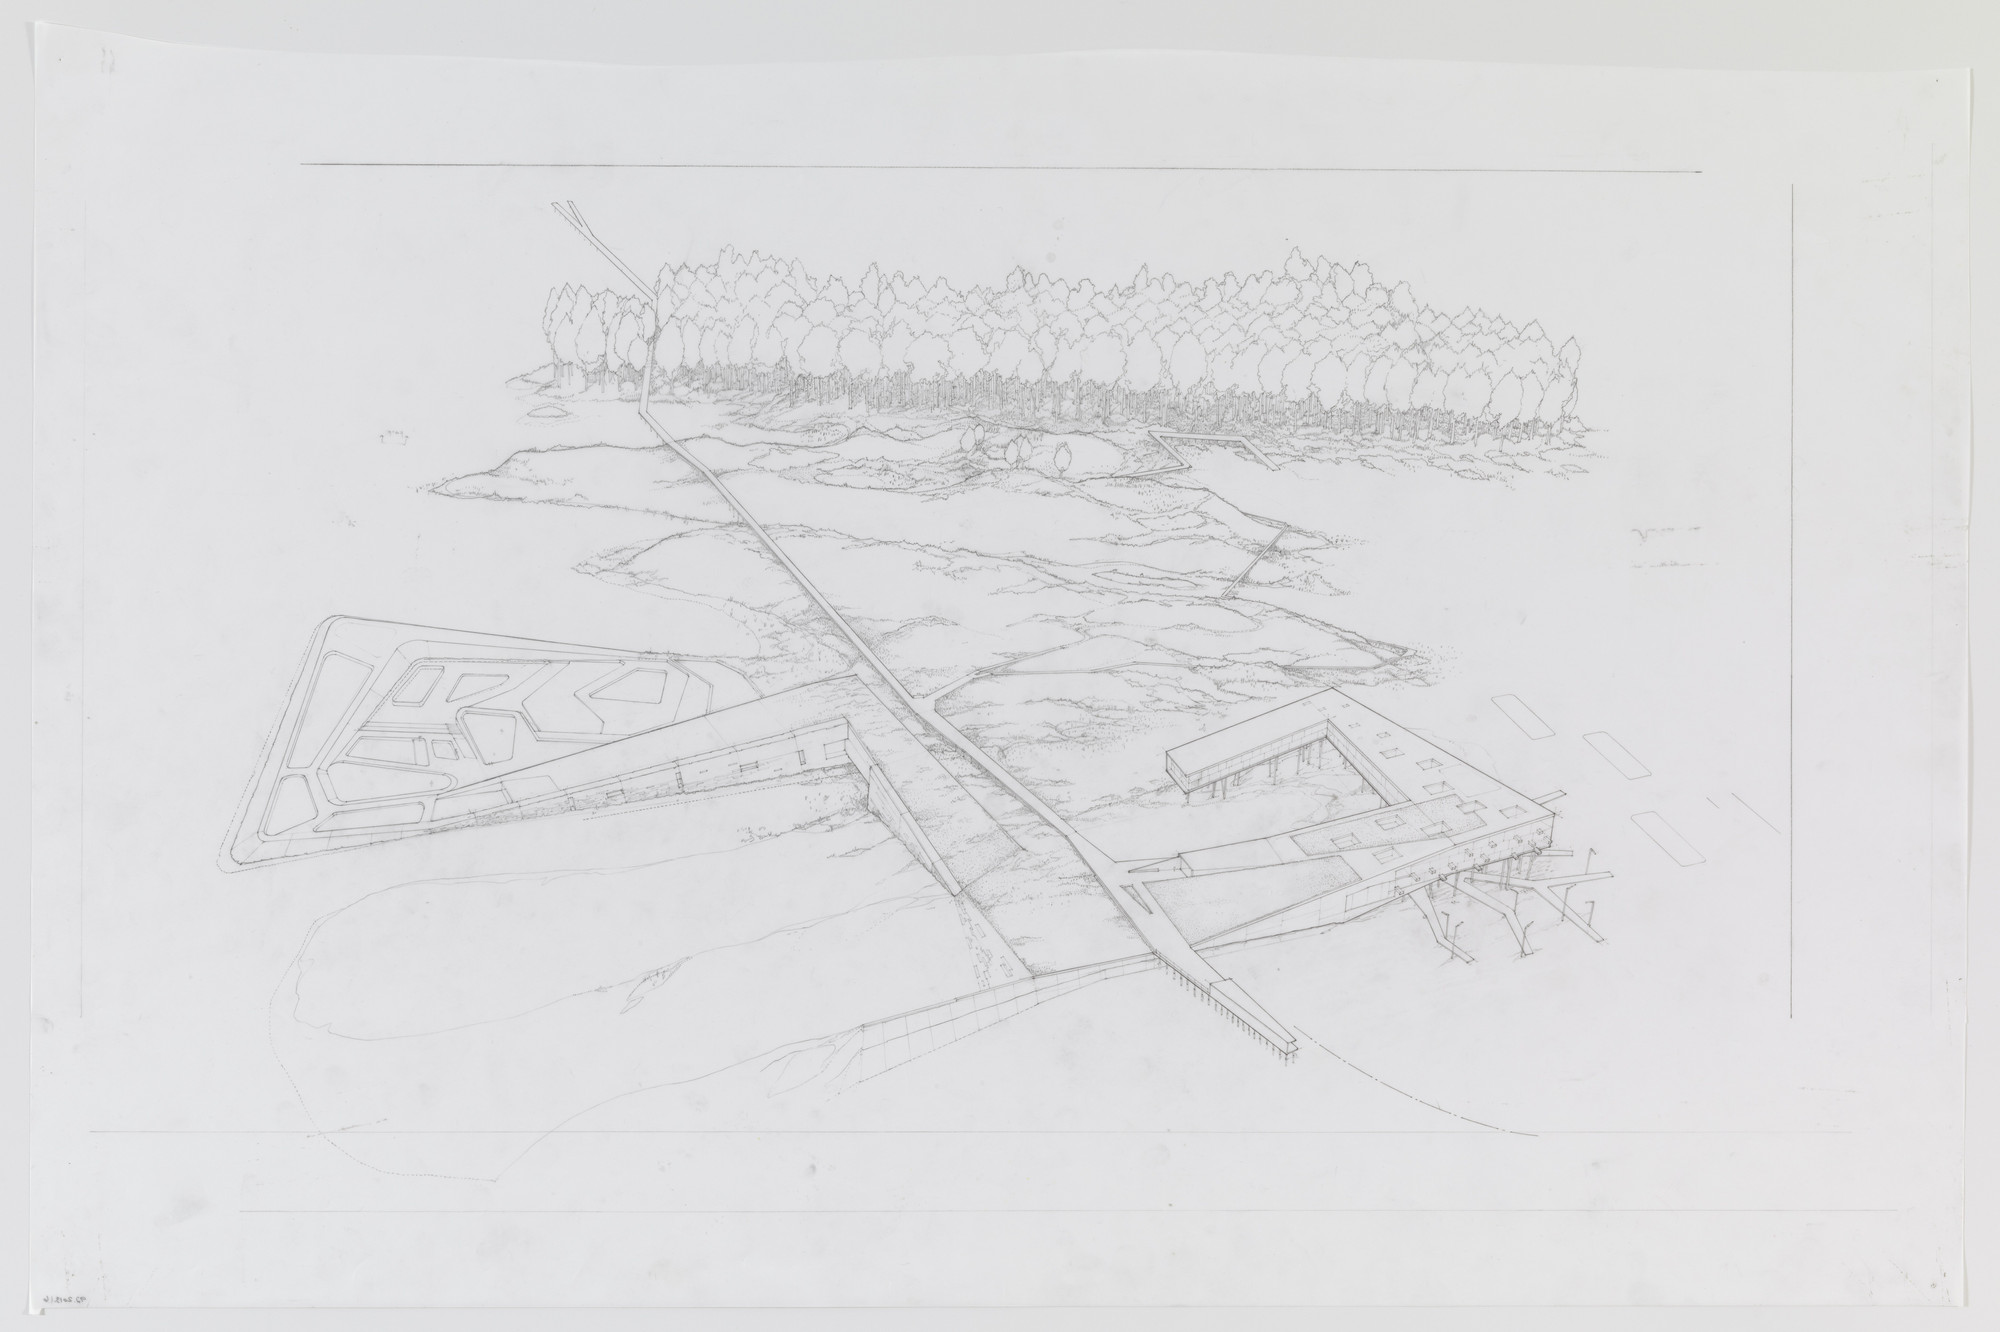 Paul Lewis, Marc Tsurumaki, David J. Lewis. Water Lodge, Water Proving Ground Project, Liberty State Park, NJ (Aerial perspective). 2010